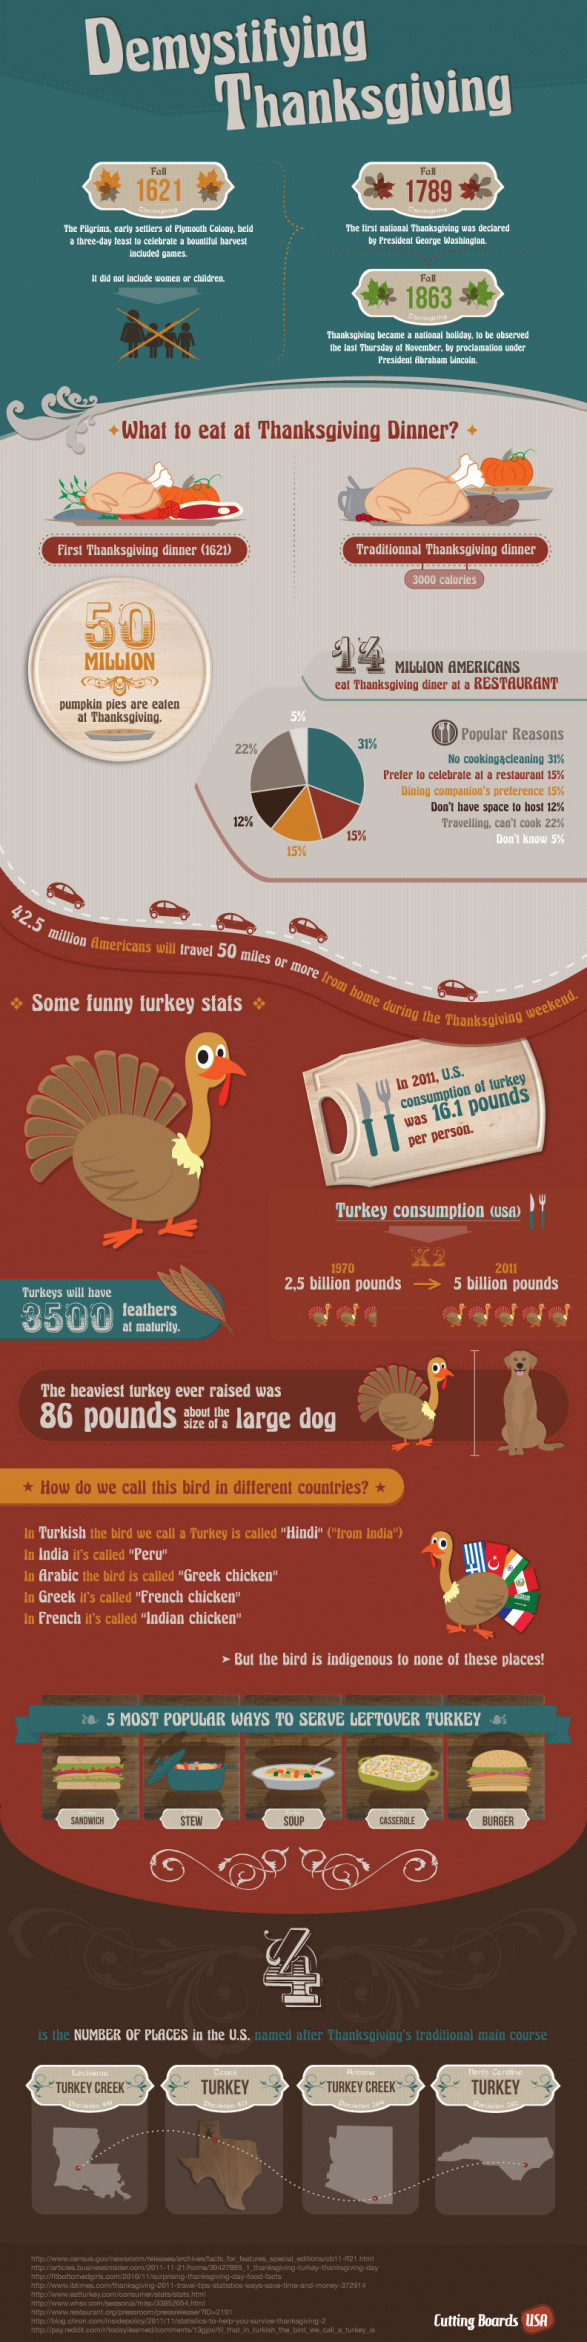 12 Infographics to Help You Prepare for and Celebrate Thanksgiving